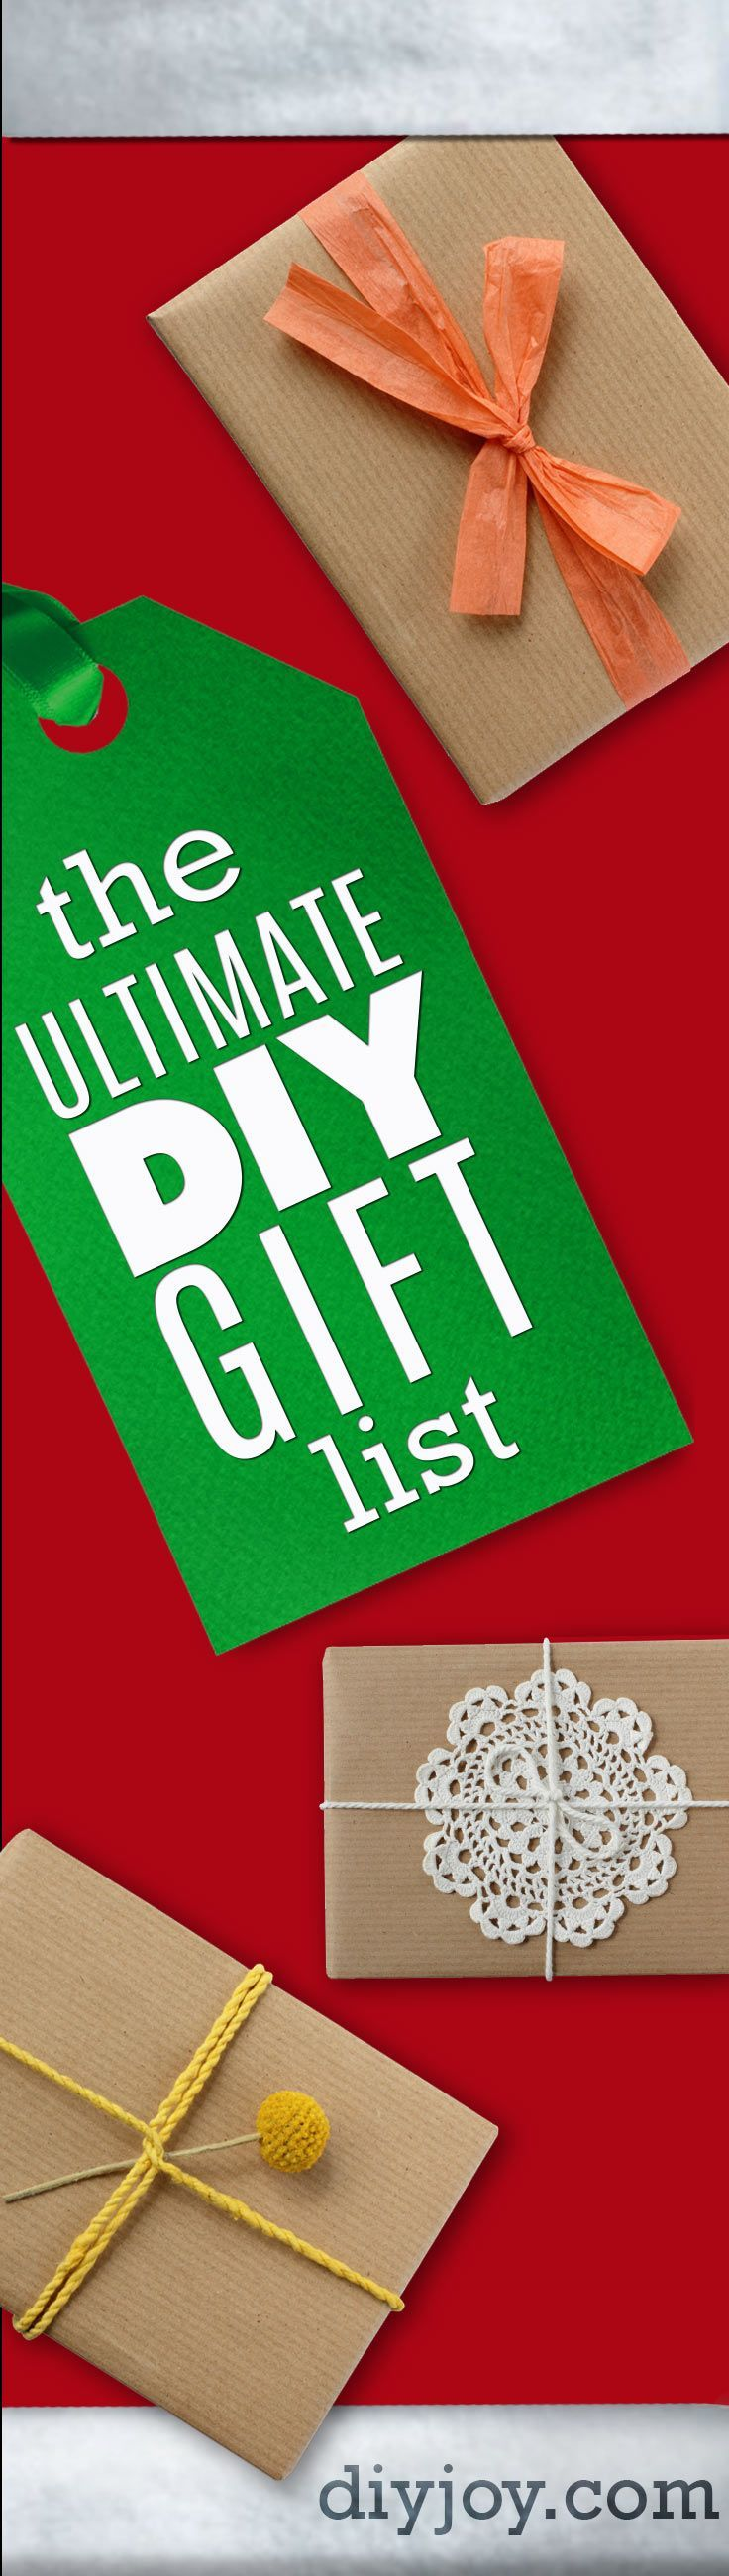 Best DIY Christmas Gifts | Do It Yourself Today | Diy ...